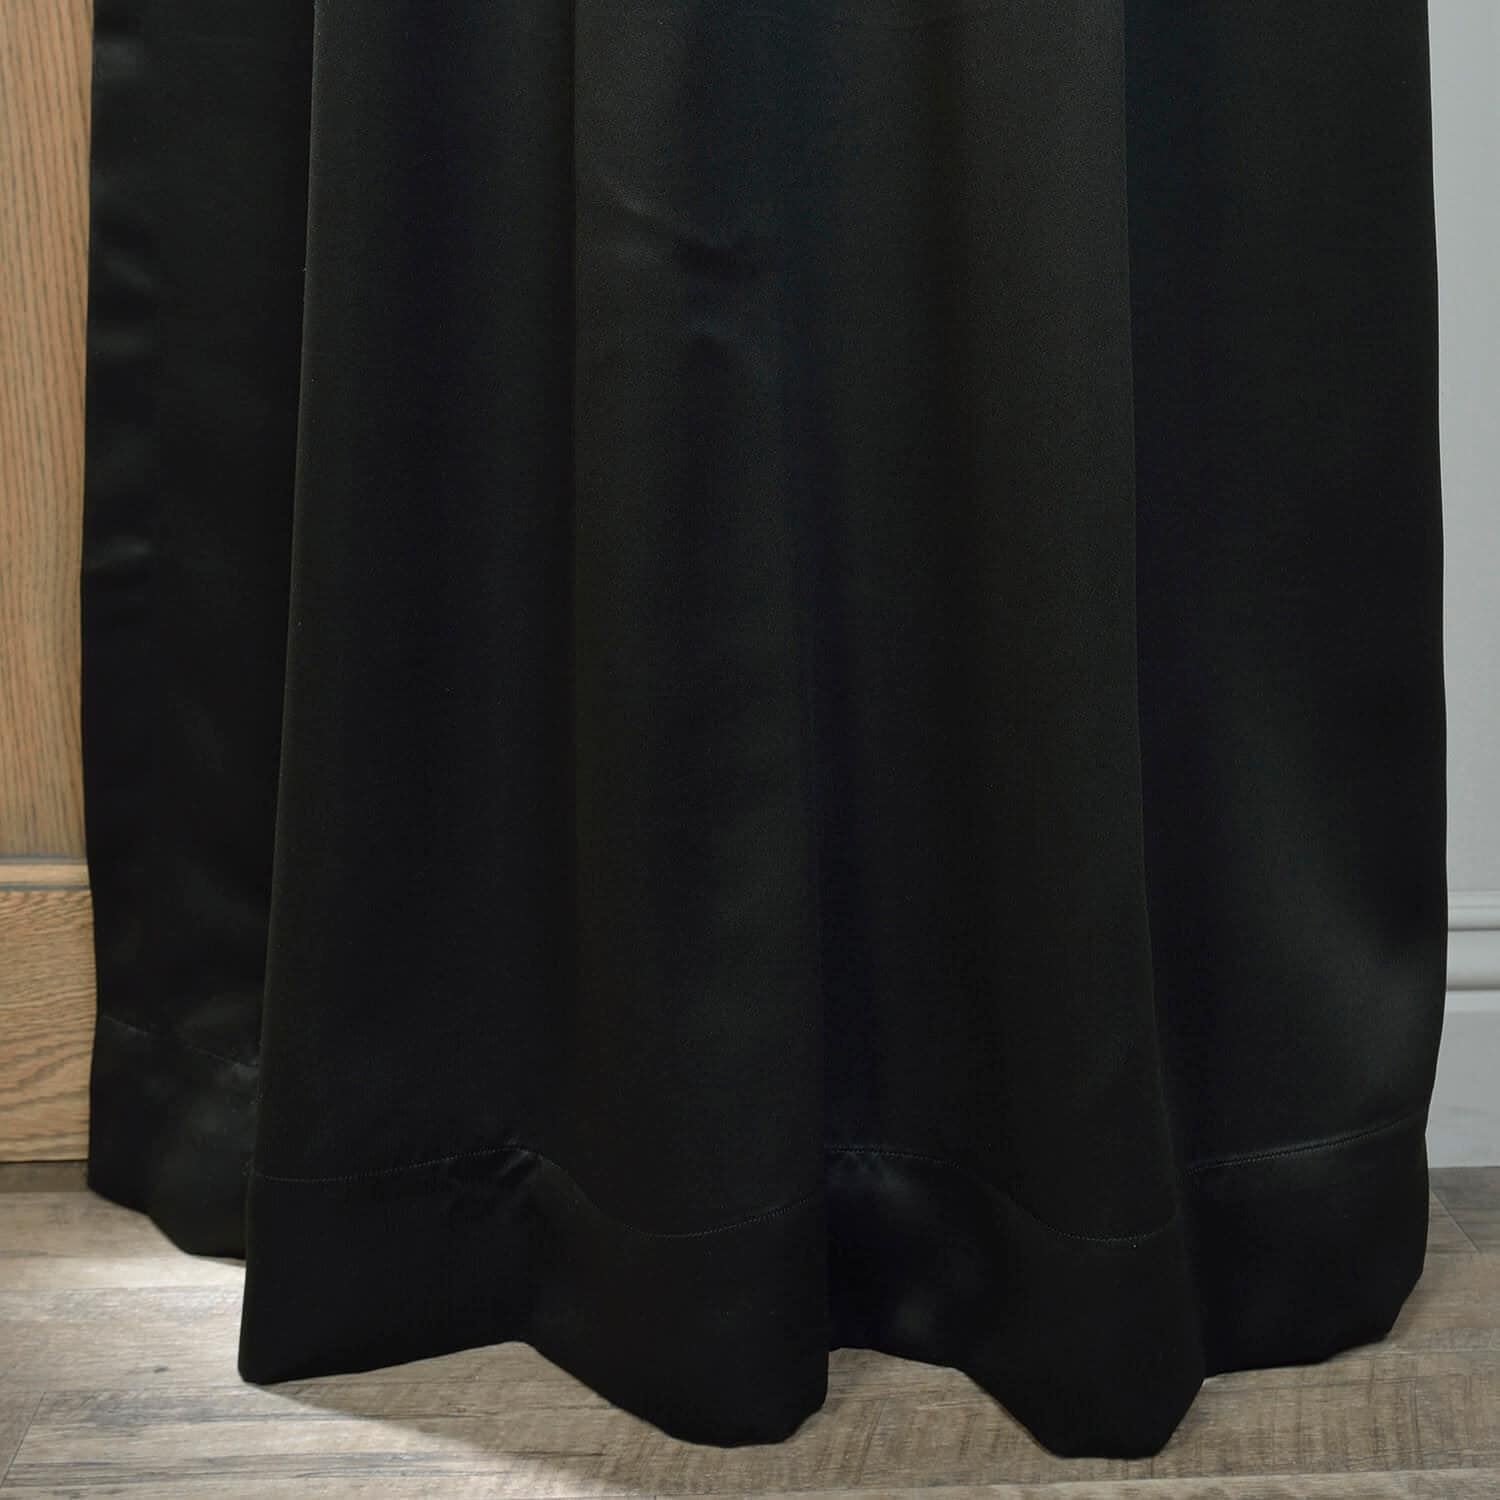 Jet Black Grommet Blackout Room Darkening Curtain